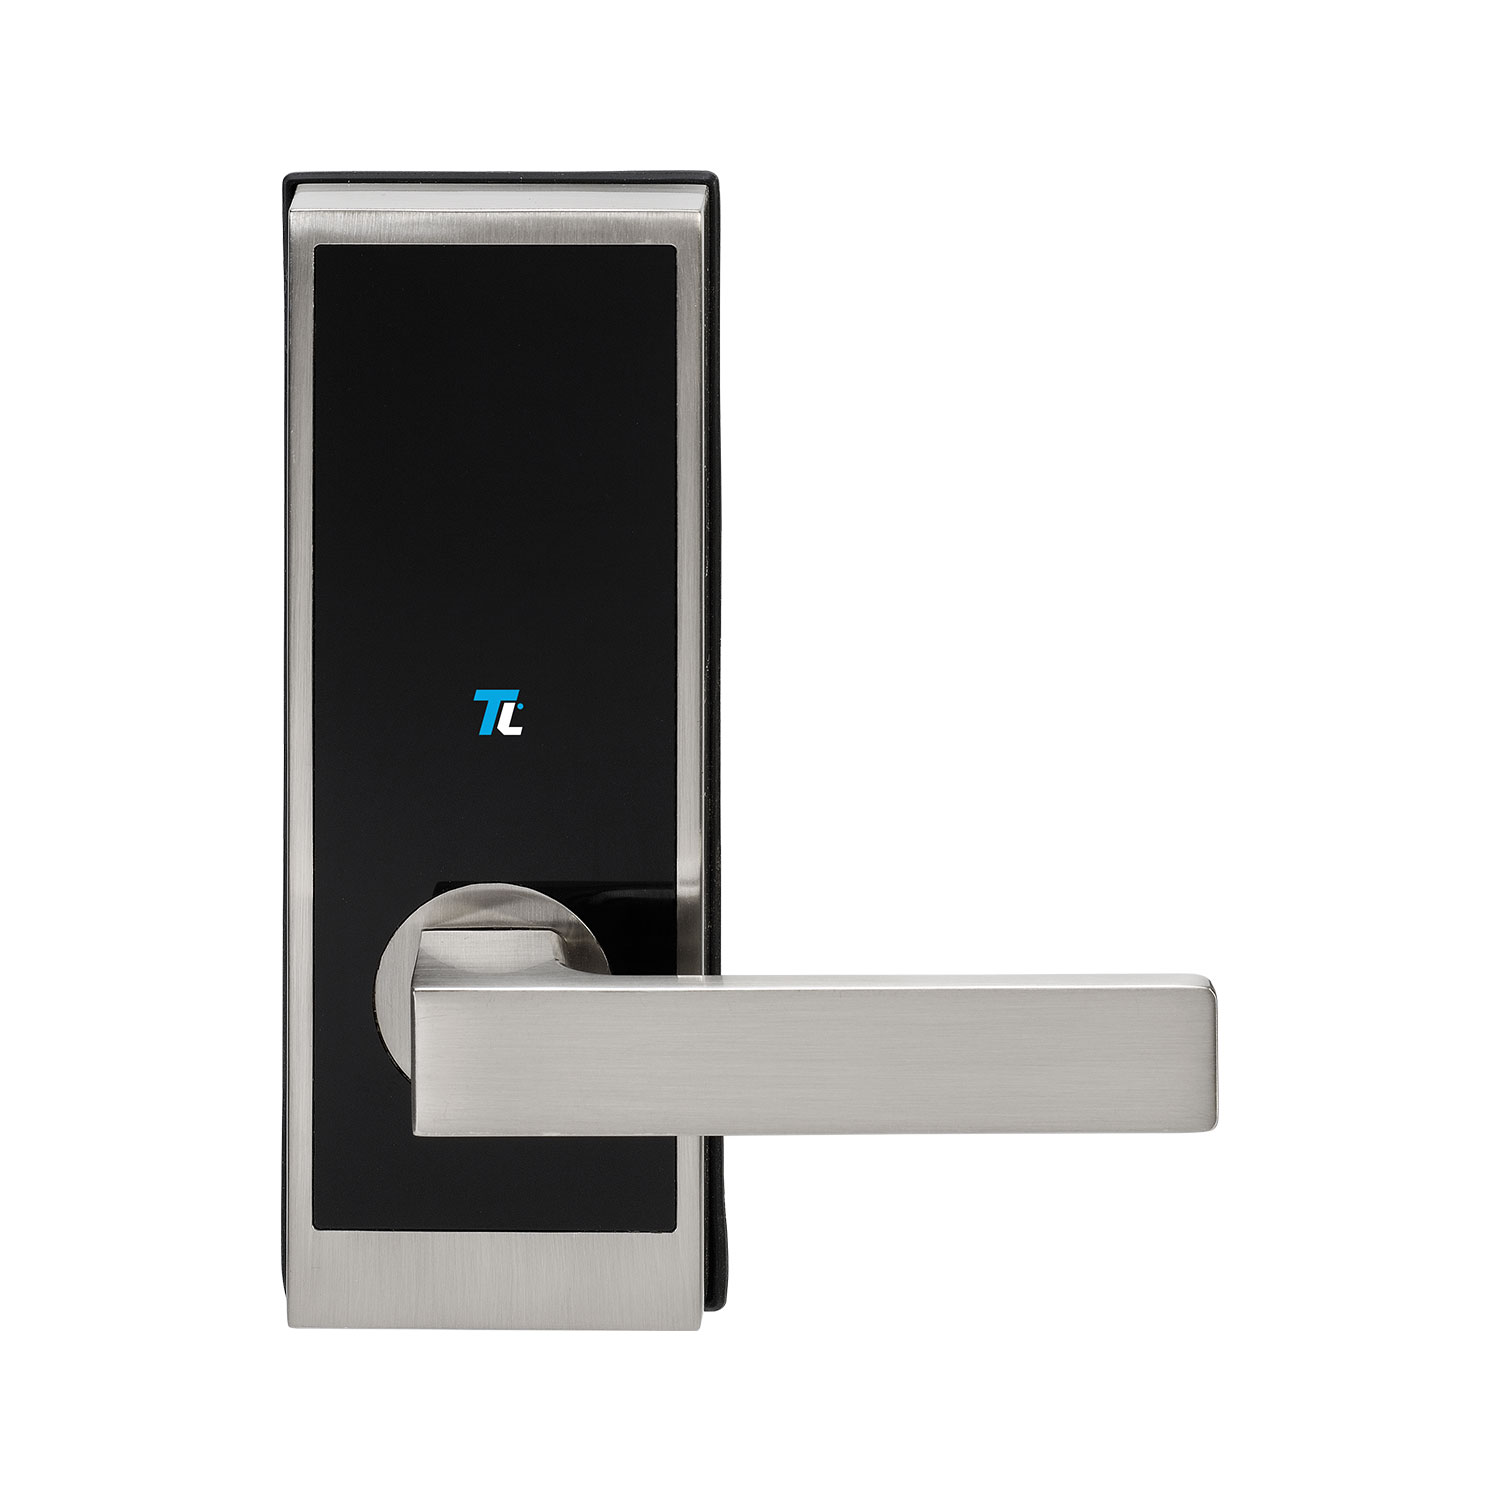 product locks com electronic small mini system dhgate drawer door lock cabinet access from control electric